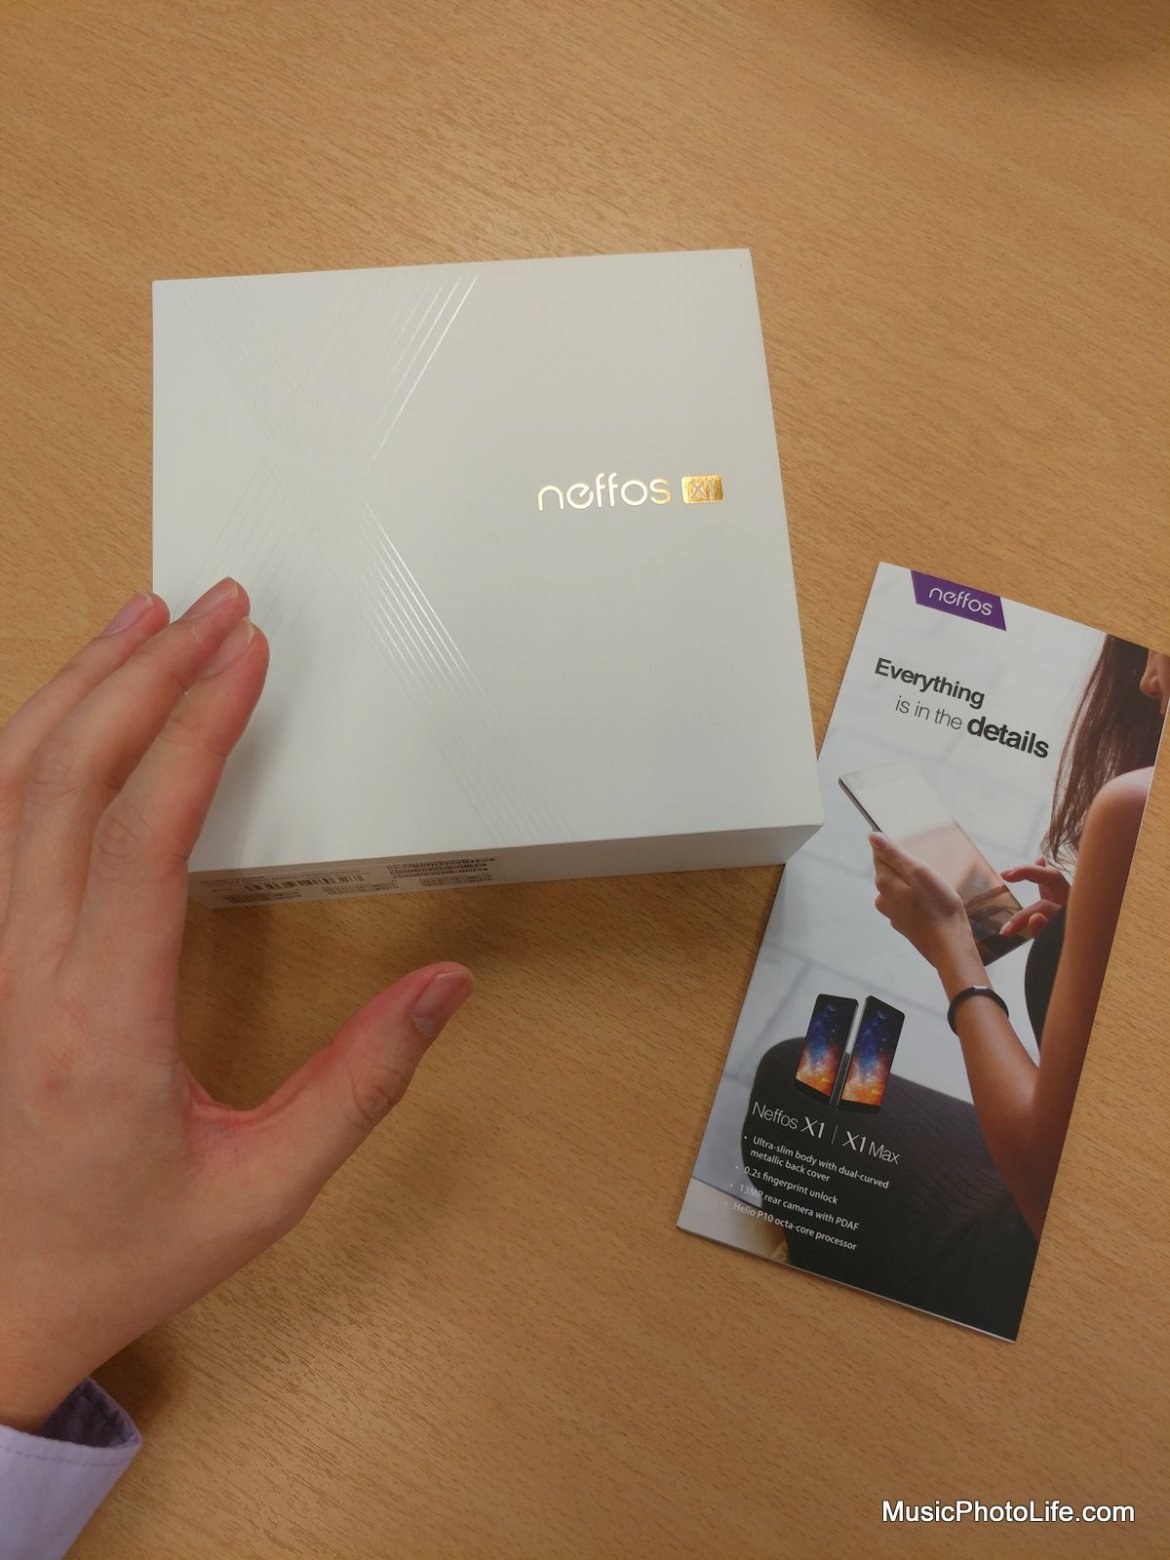 Neffos X1 box, review by Singapore gadget reviewer Chester Tan